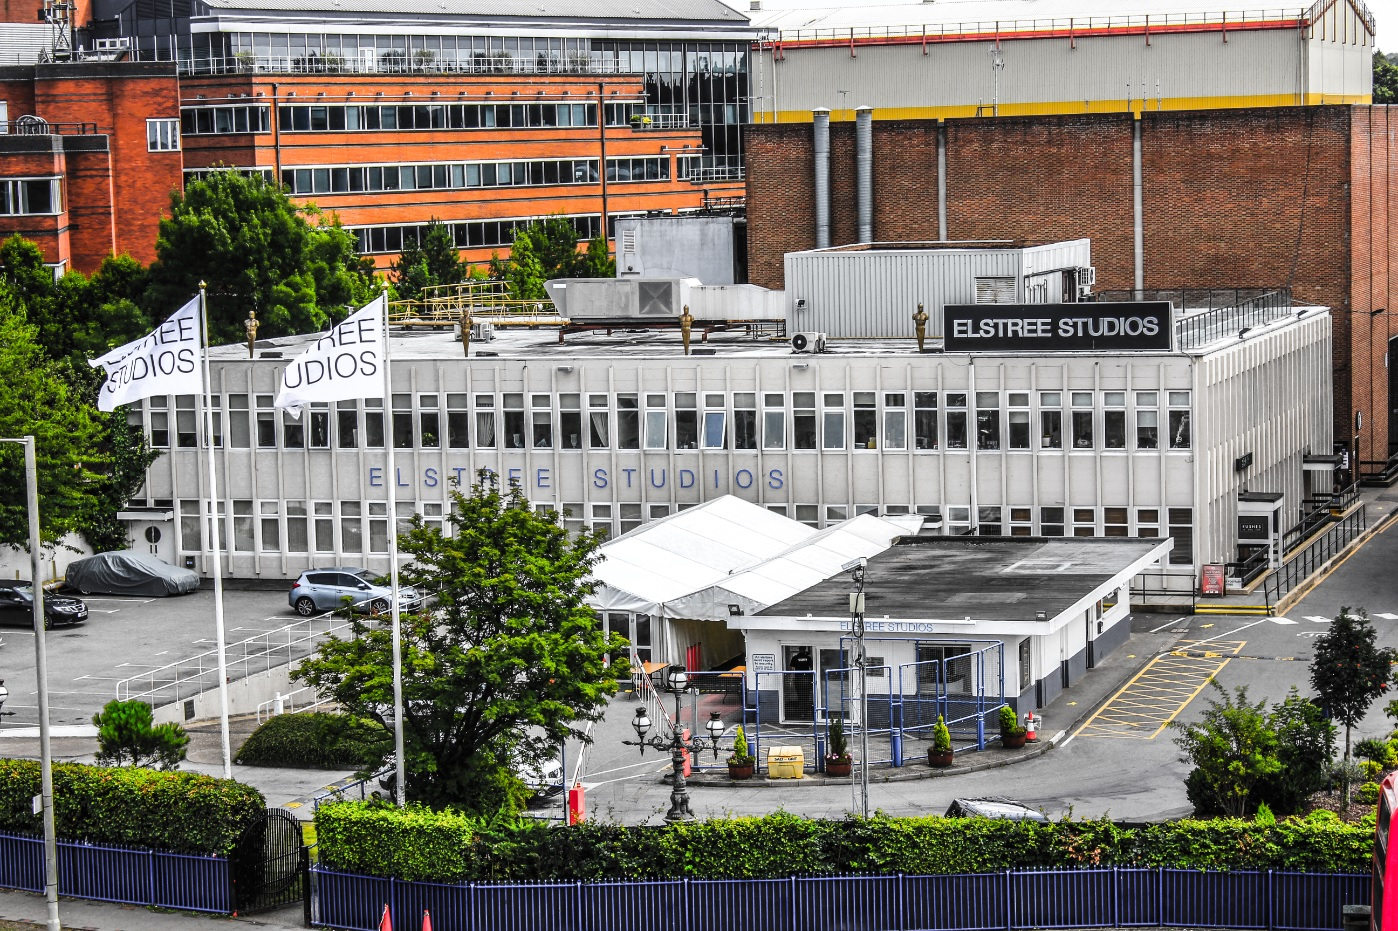 Elstree Studios building exterior photo